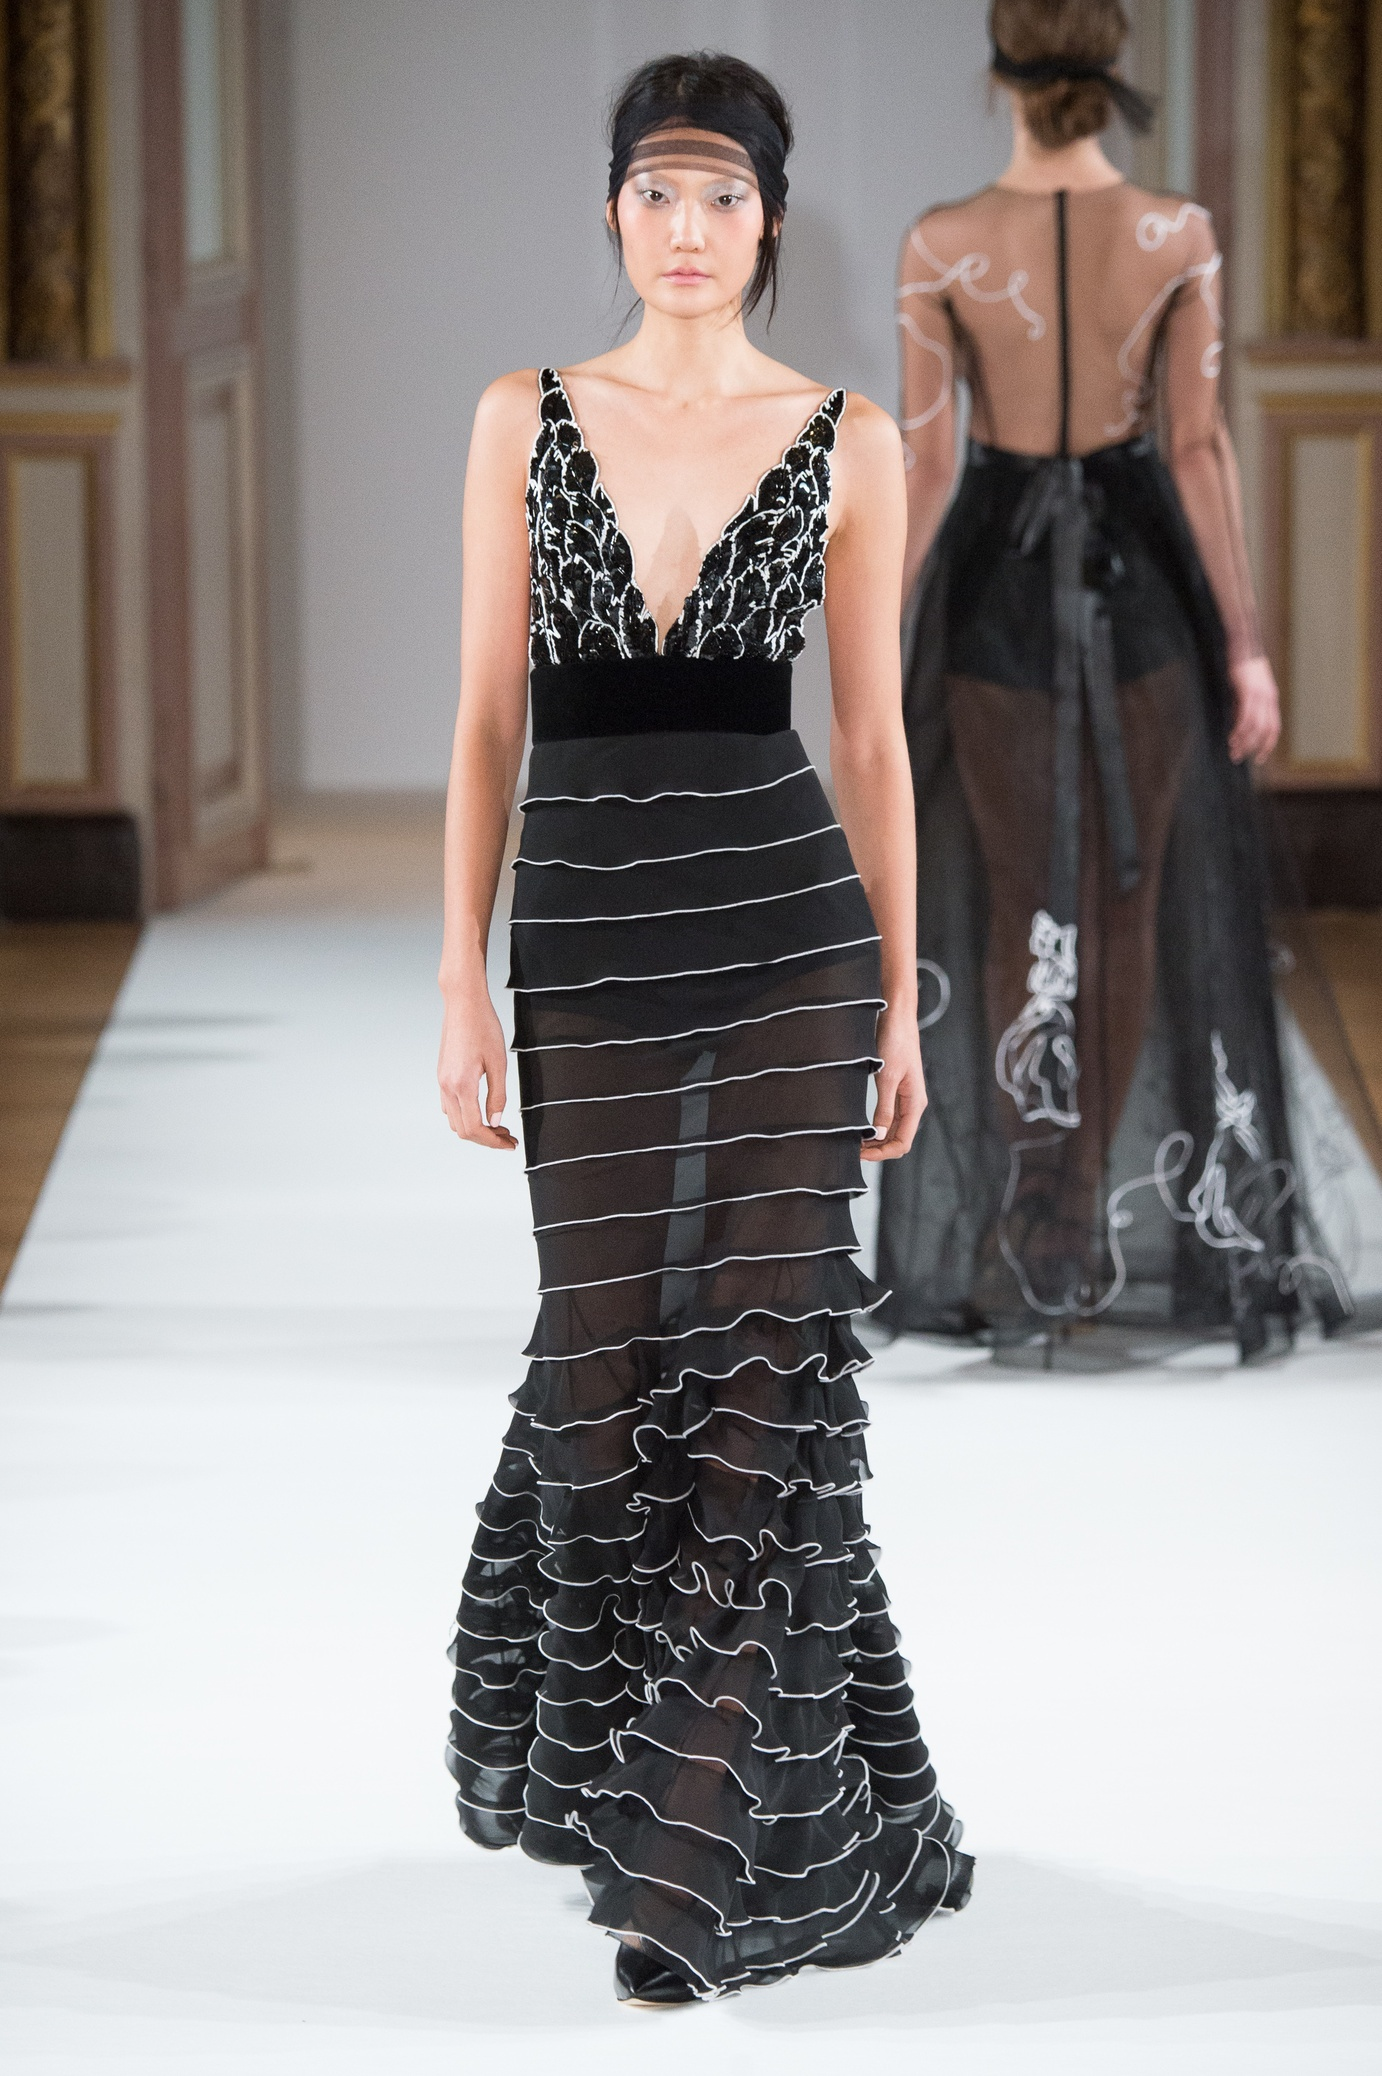 yanina_couture_ss16___look_22_jpg_9537_north_1382x_black